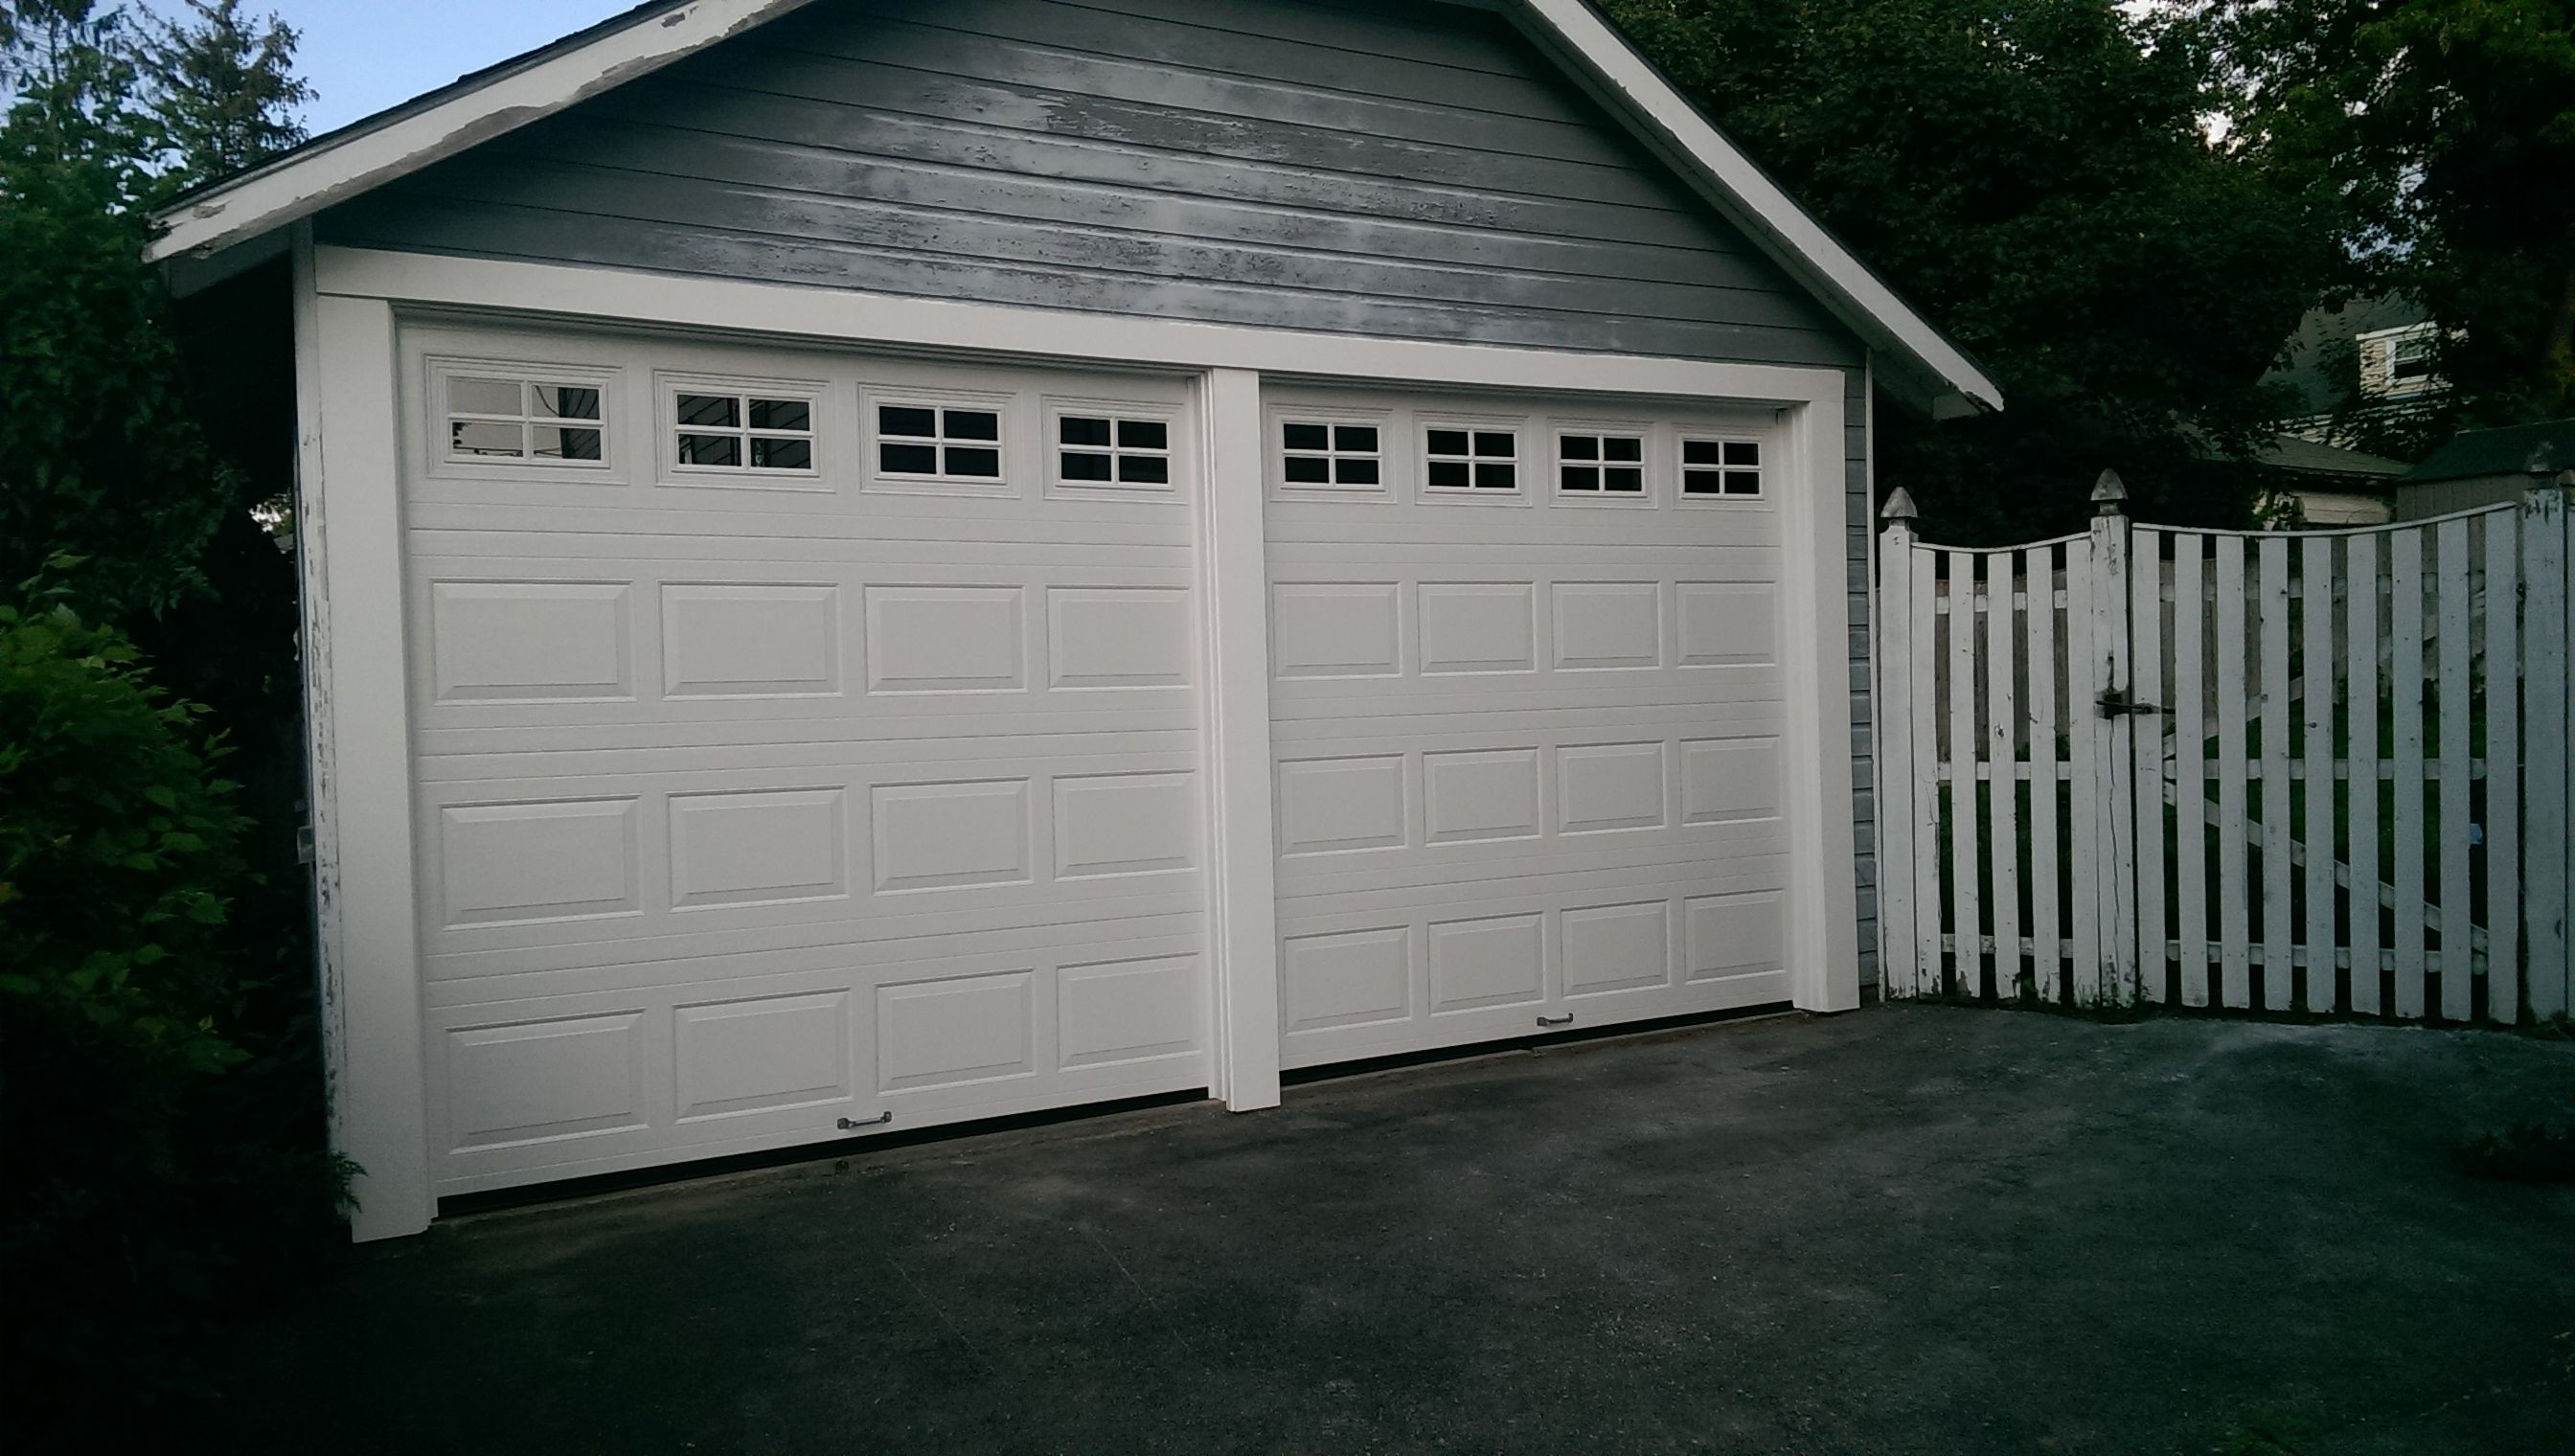 Haas Model 680 Raised Panel Steel Insulated Garage Doors In White With Colonial Glass Installed By Mort Garage Door Styles Garage Door Insulation Garage Doors